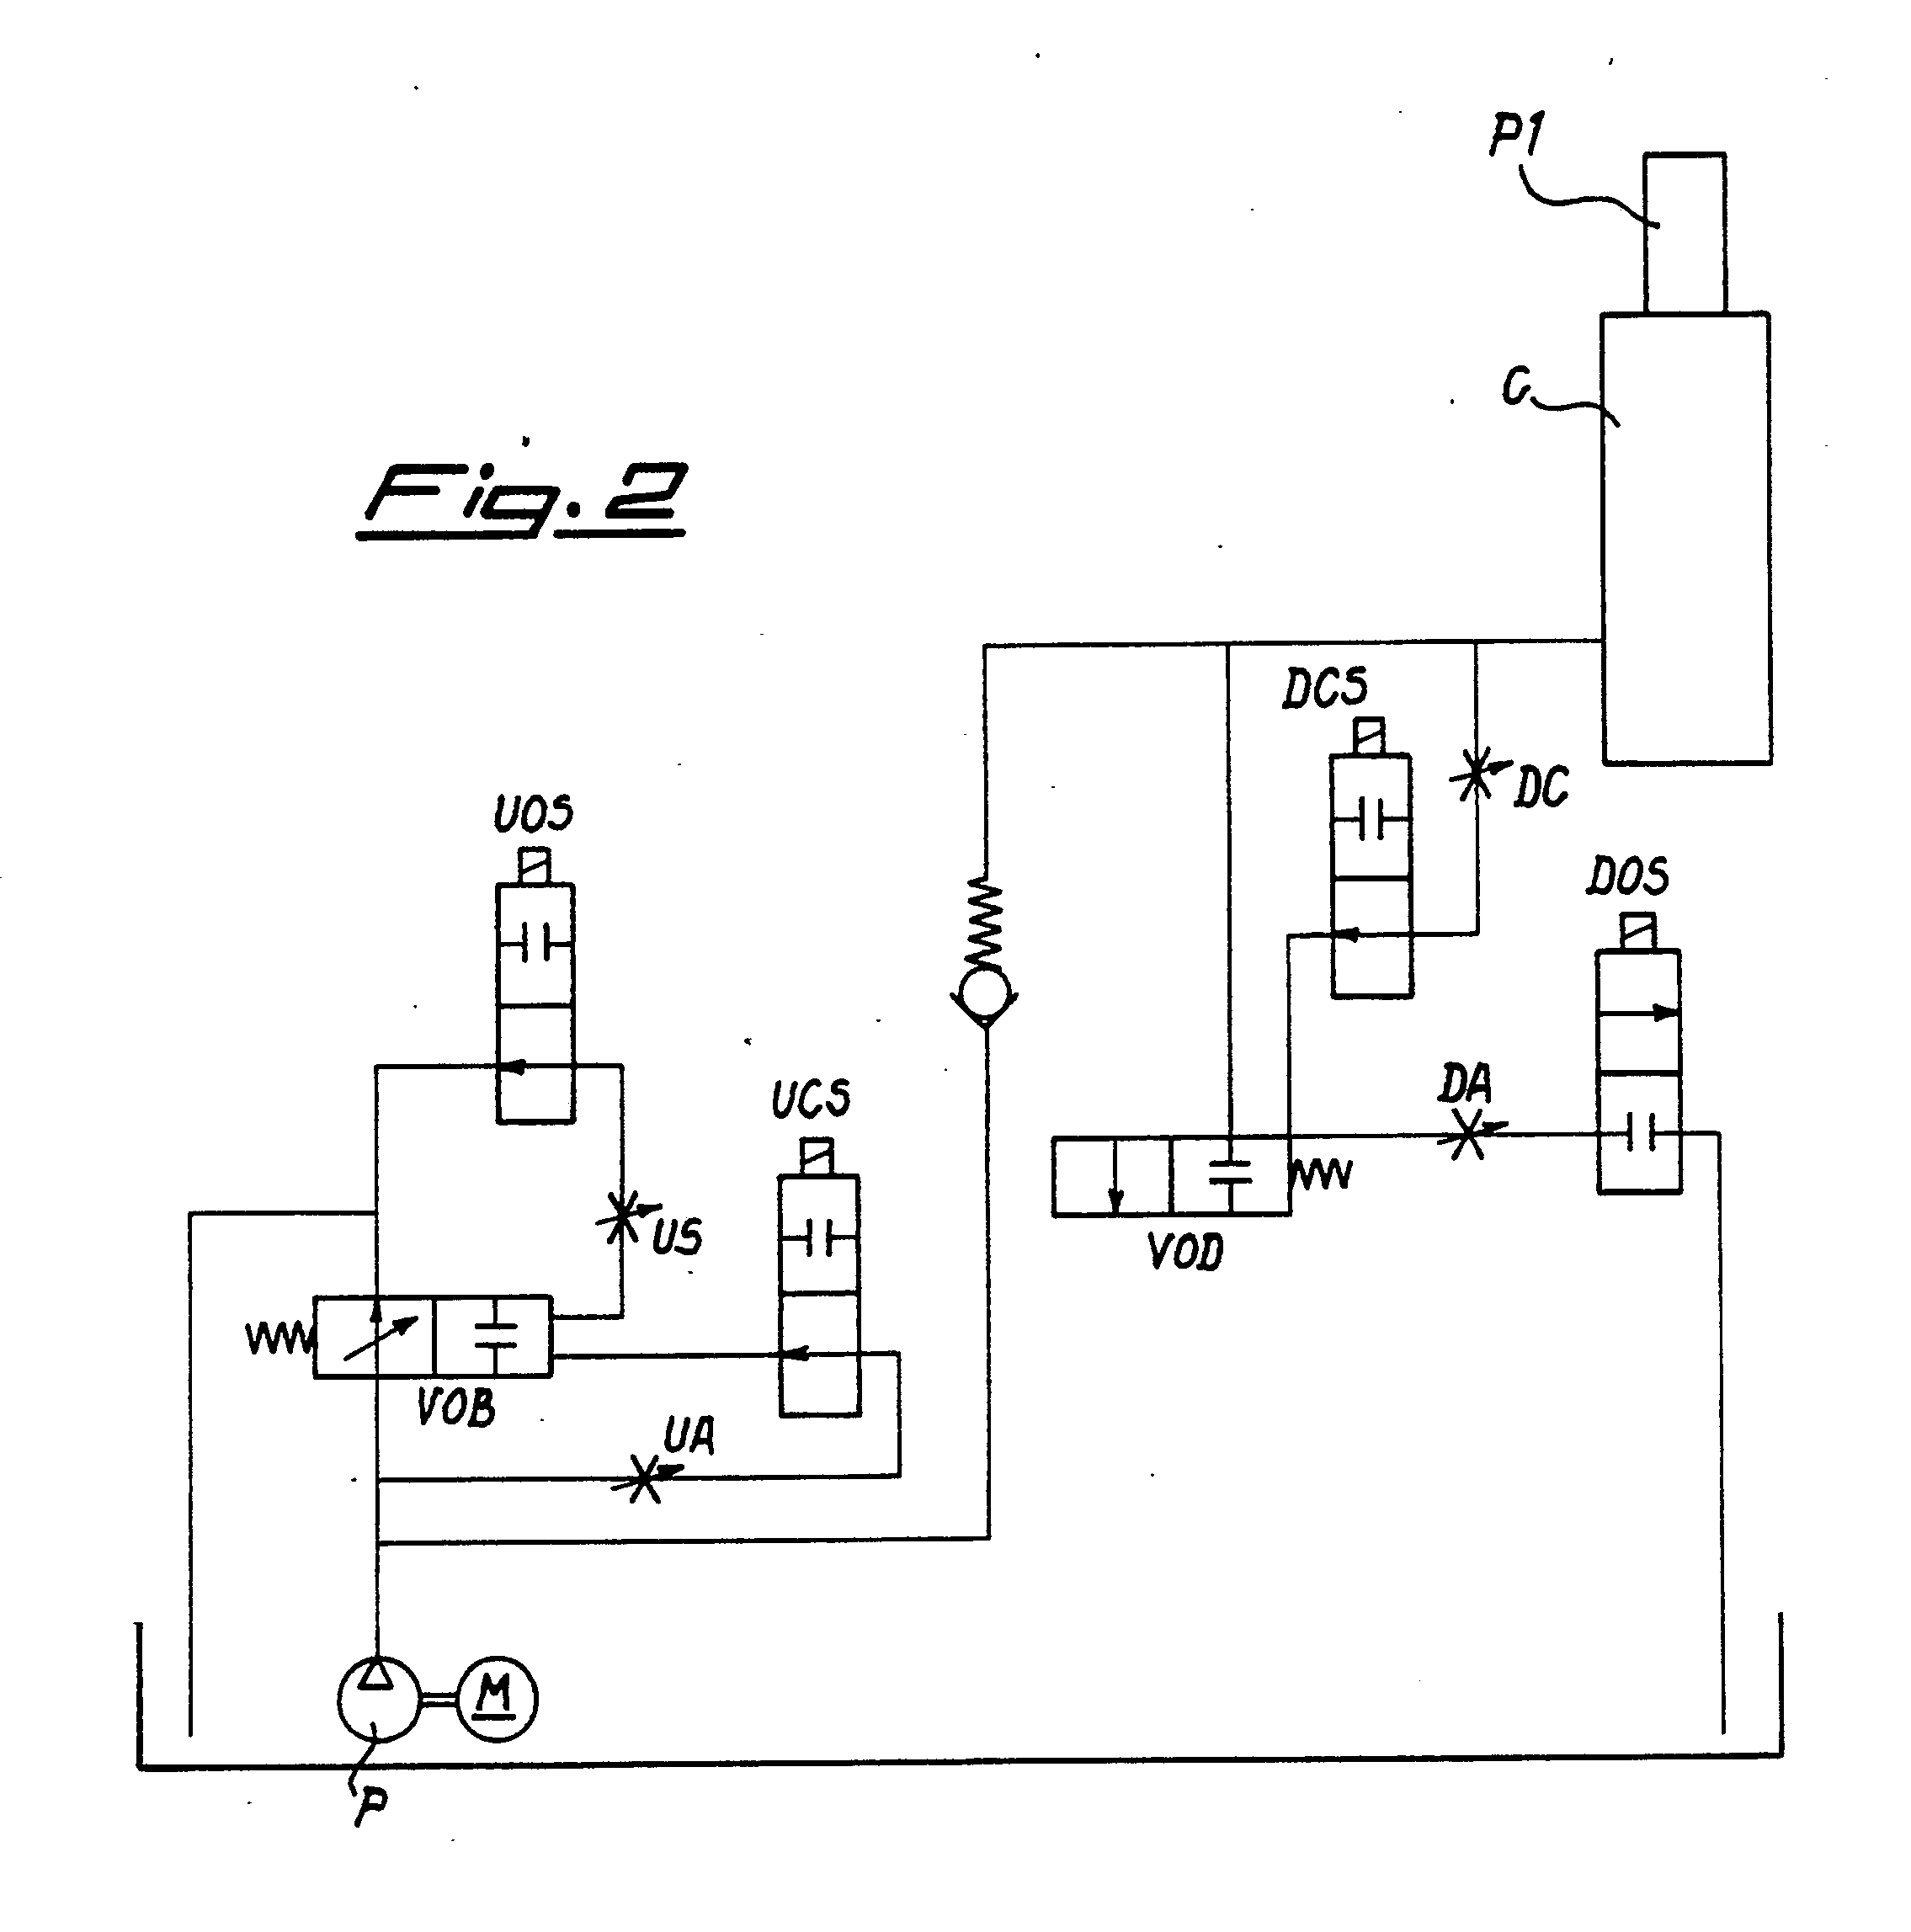 [LK_4883] Shunt Trip Wiring Diagram For Elevator Methods